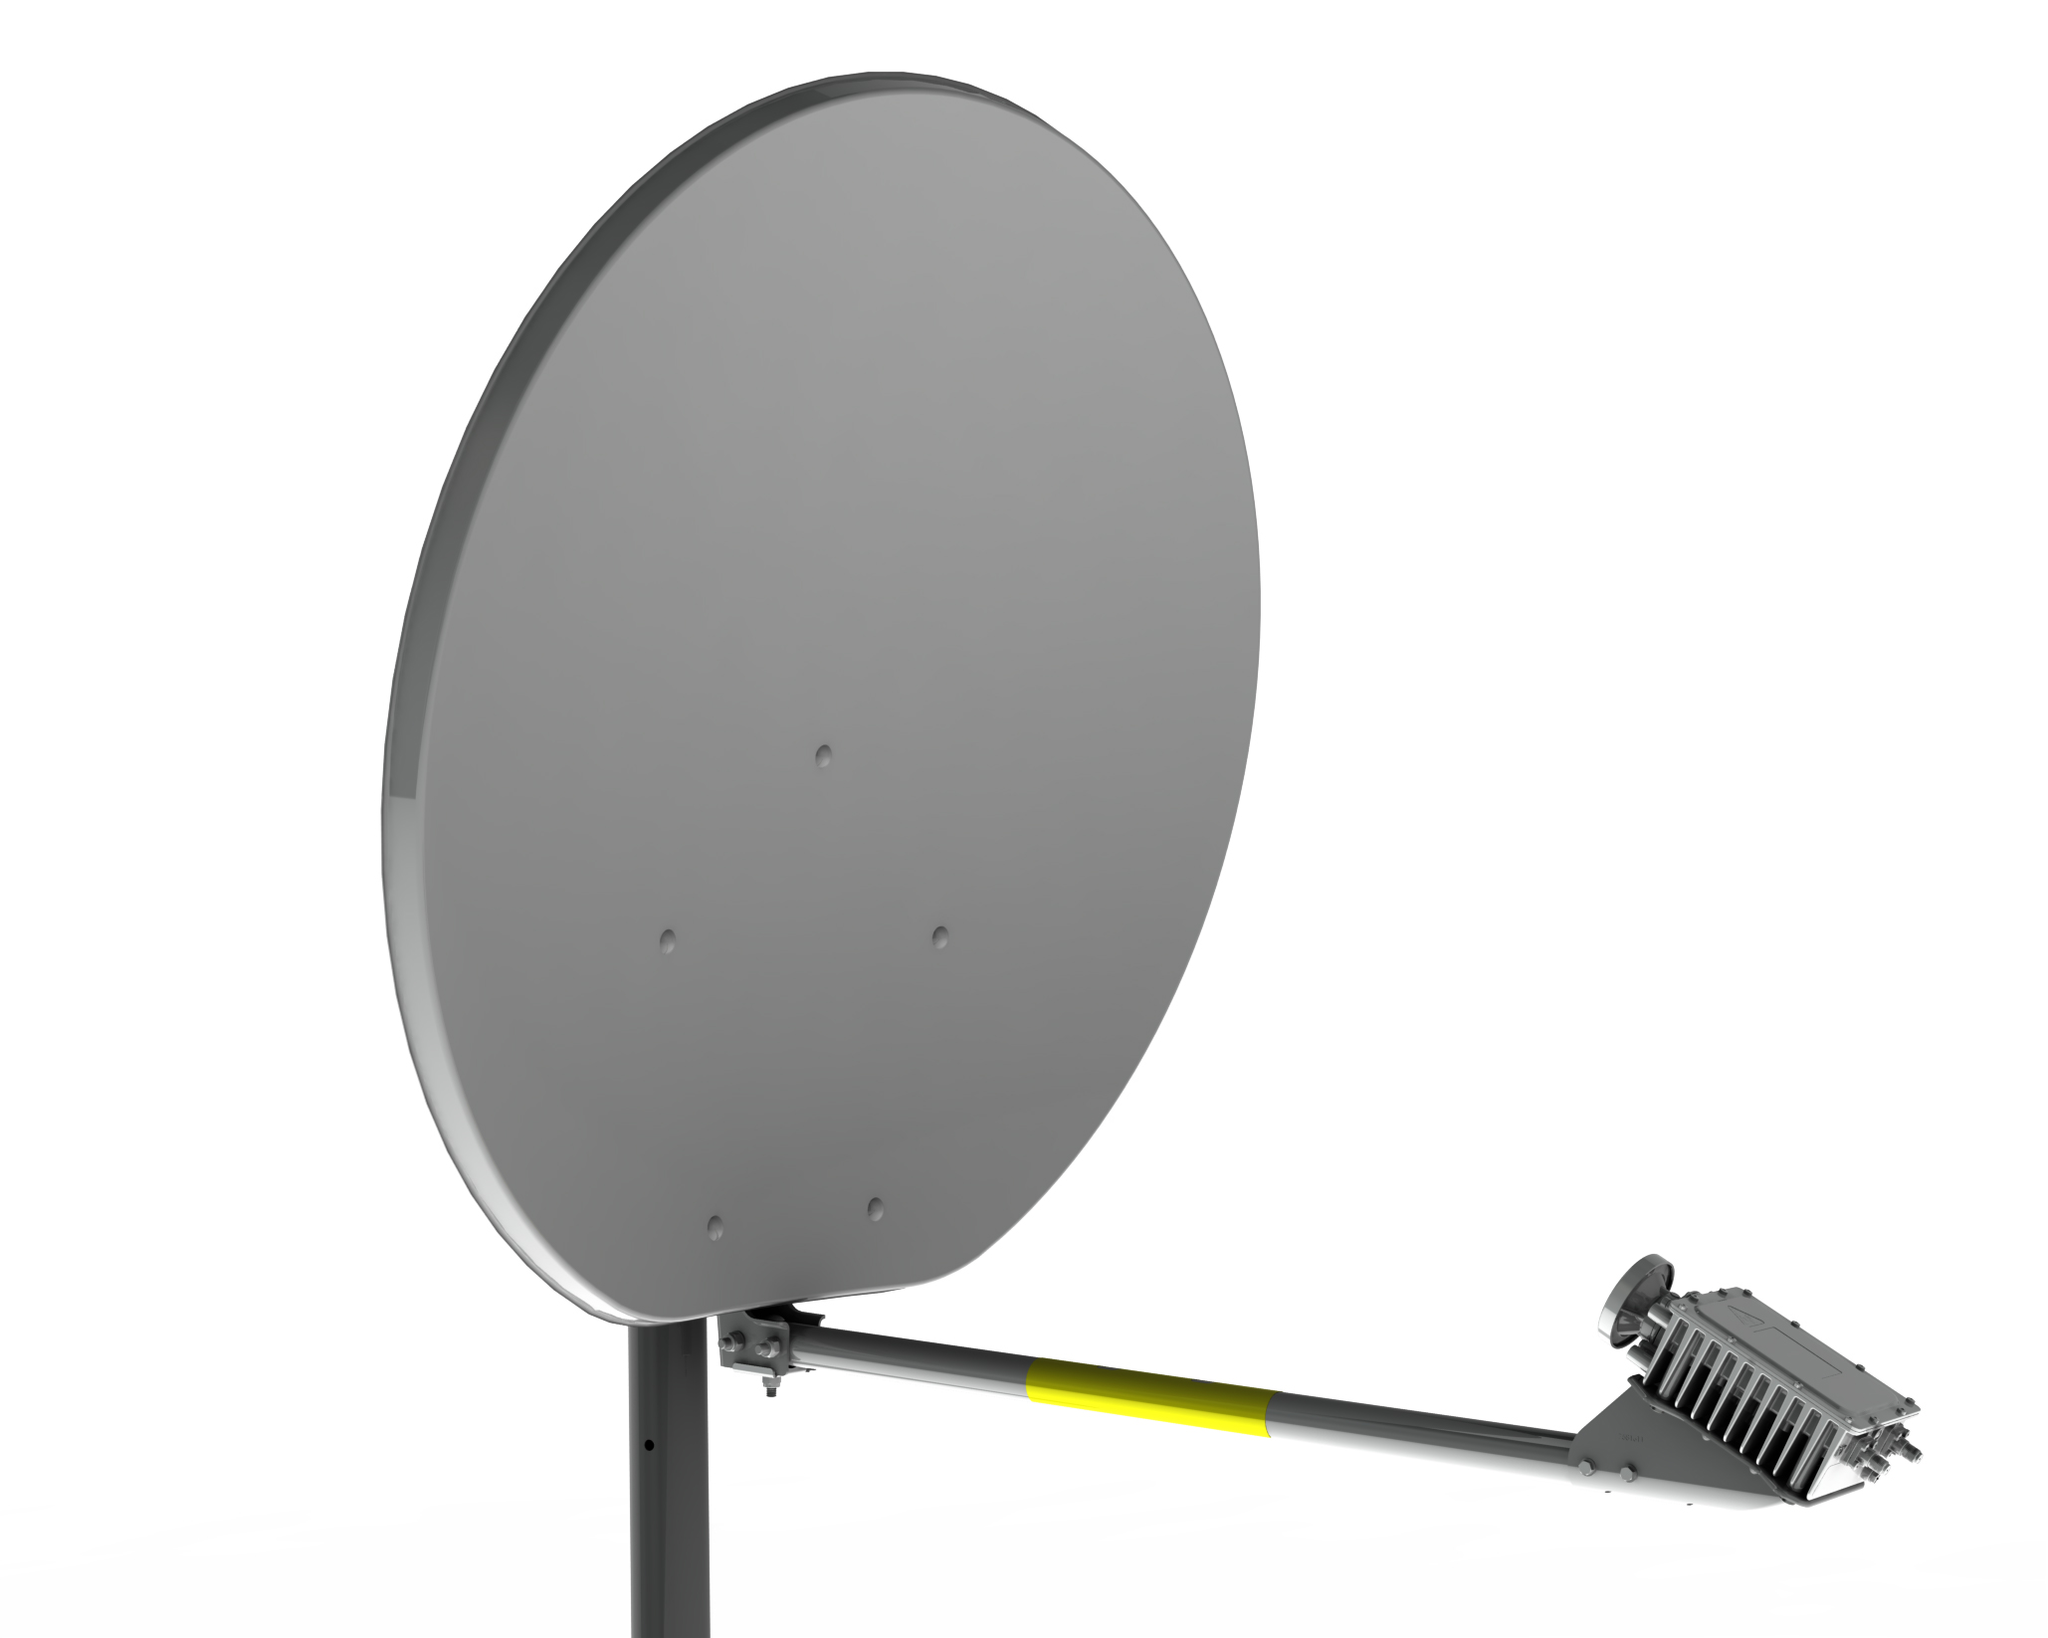 90 VSAT antenna with XRF